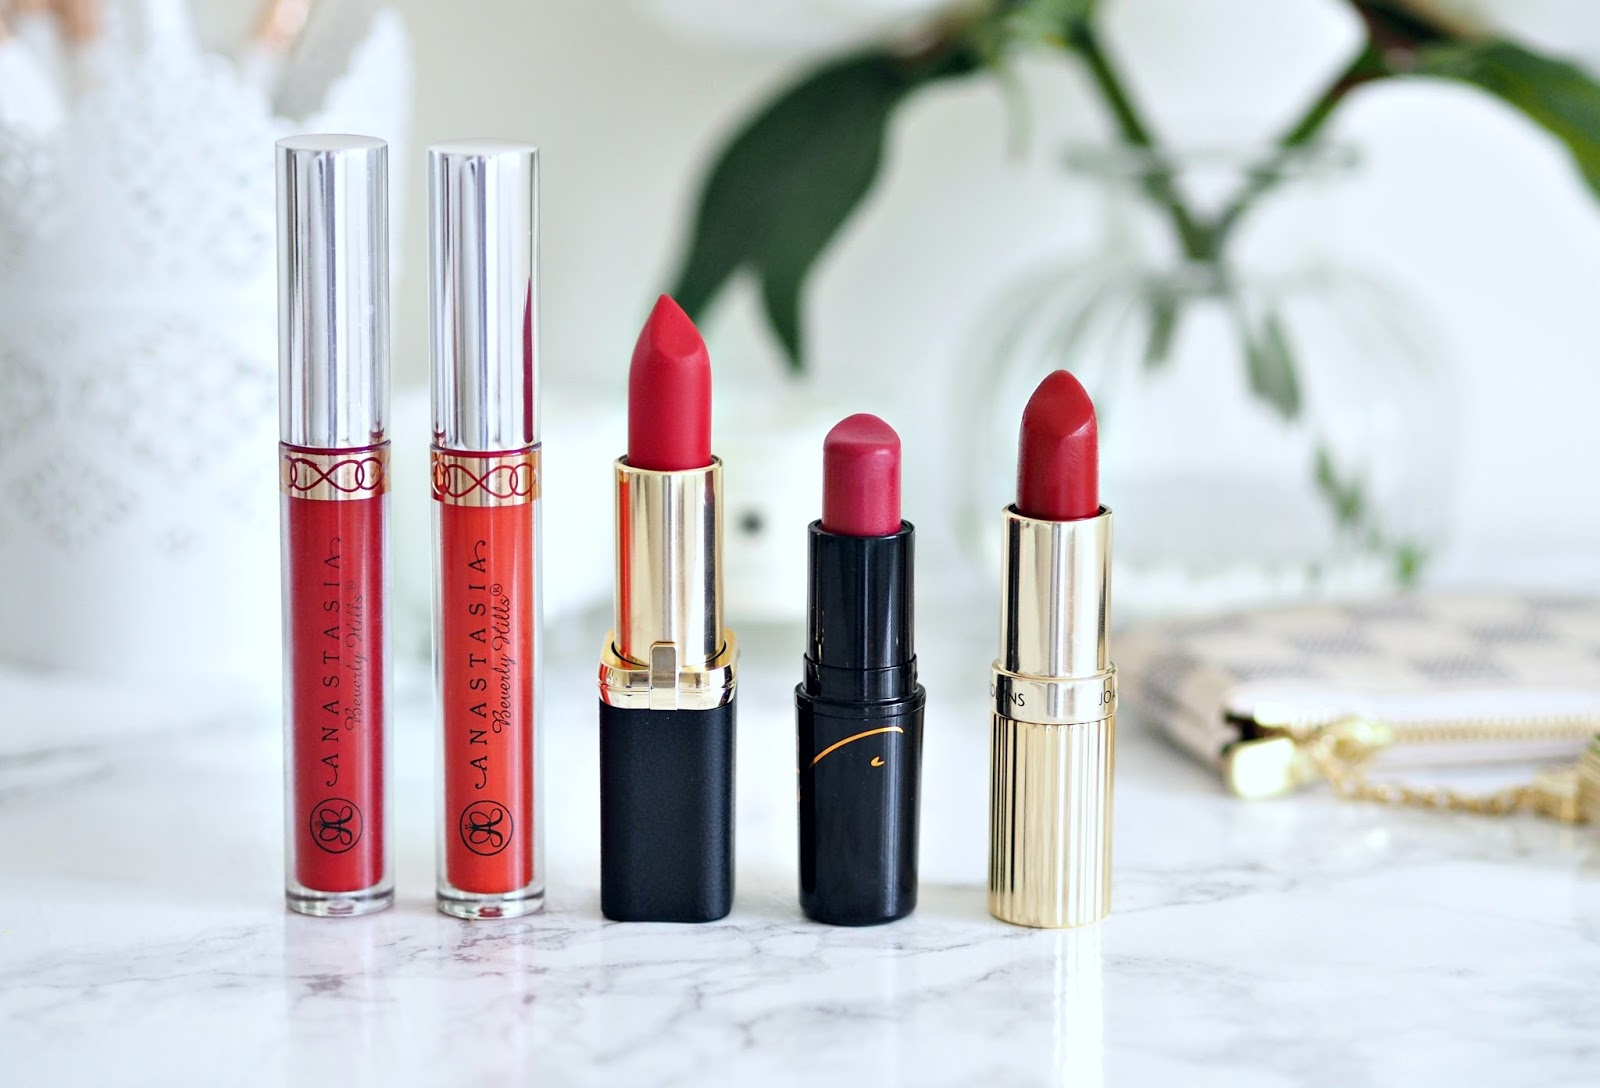 My 5 favourite red lipsticks including ABH, MAC, LOreal and Joan Collins